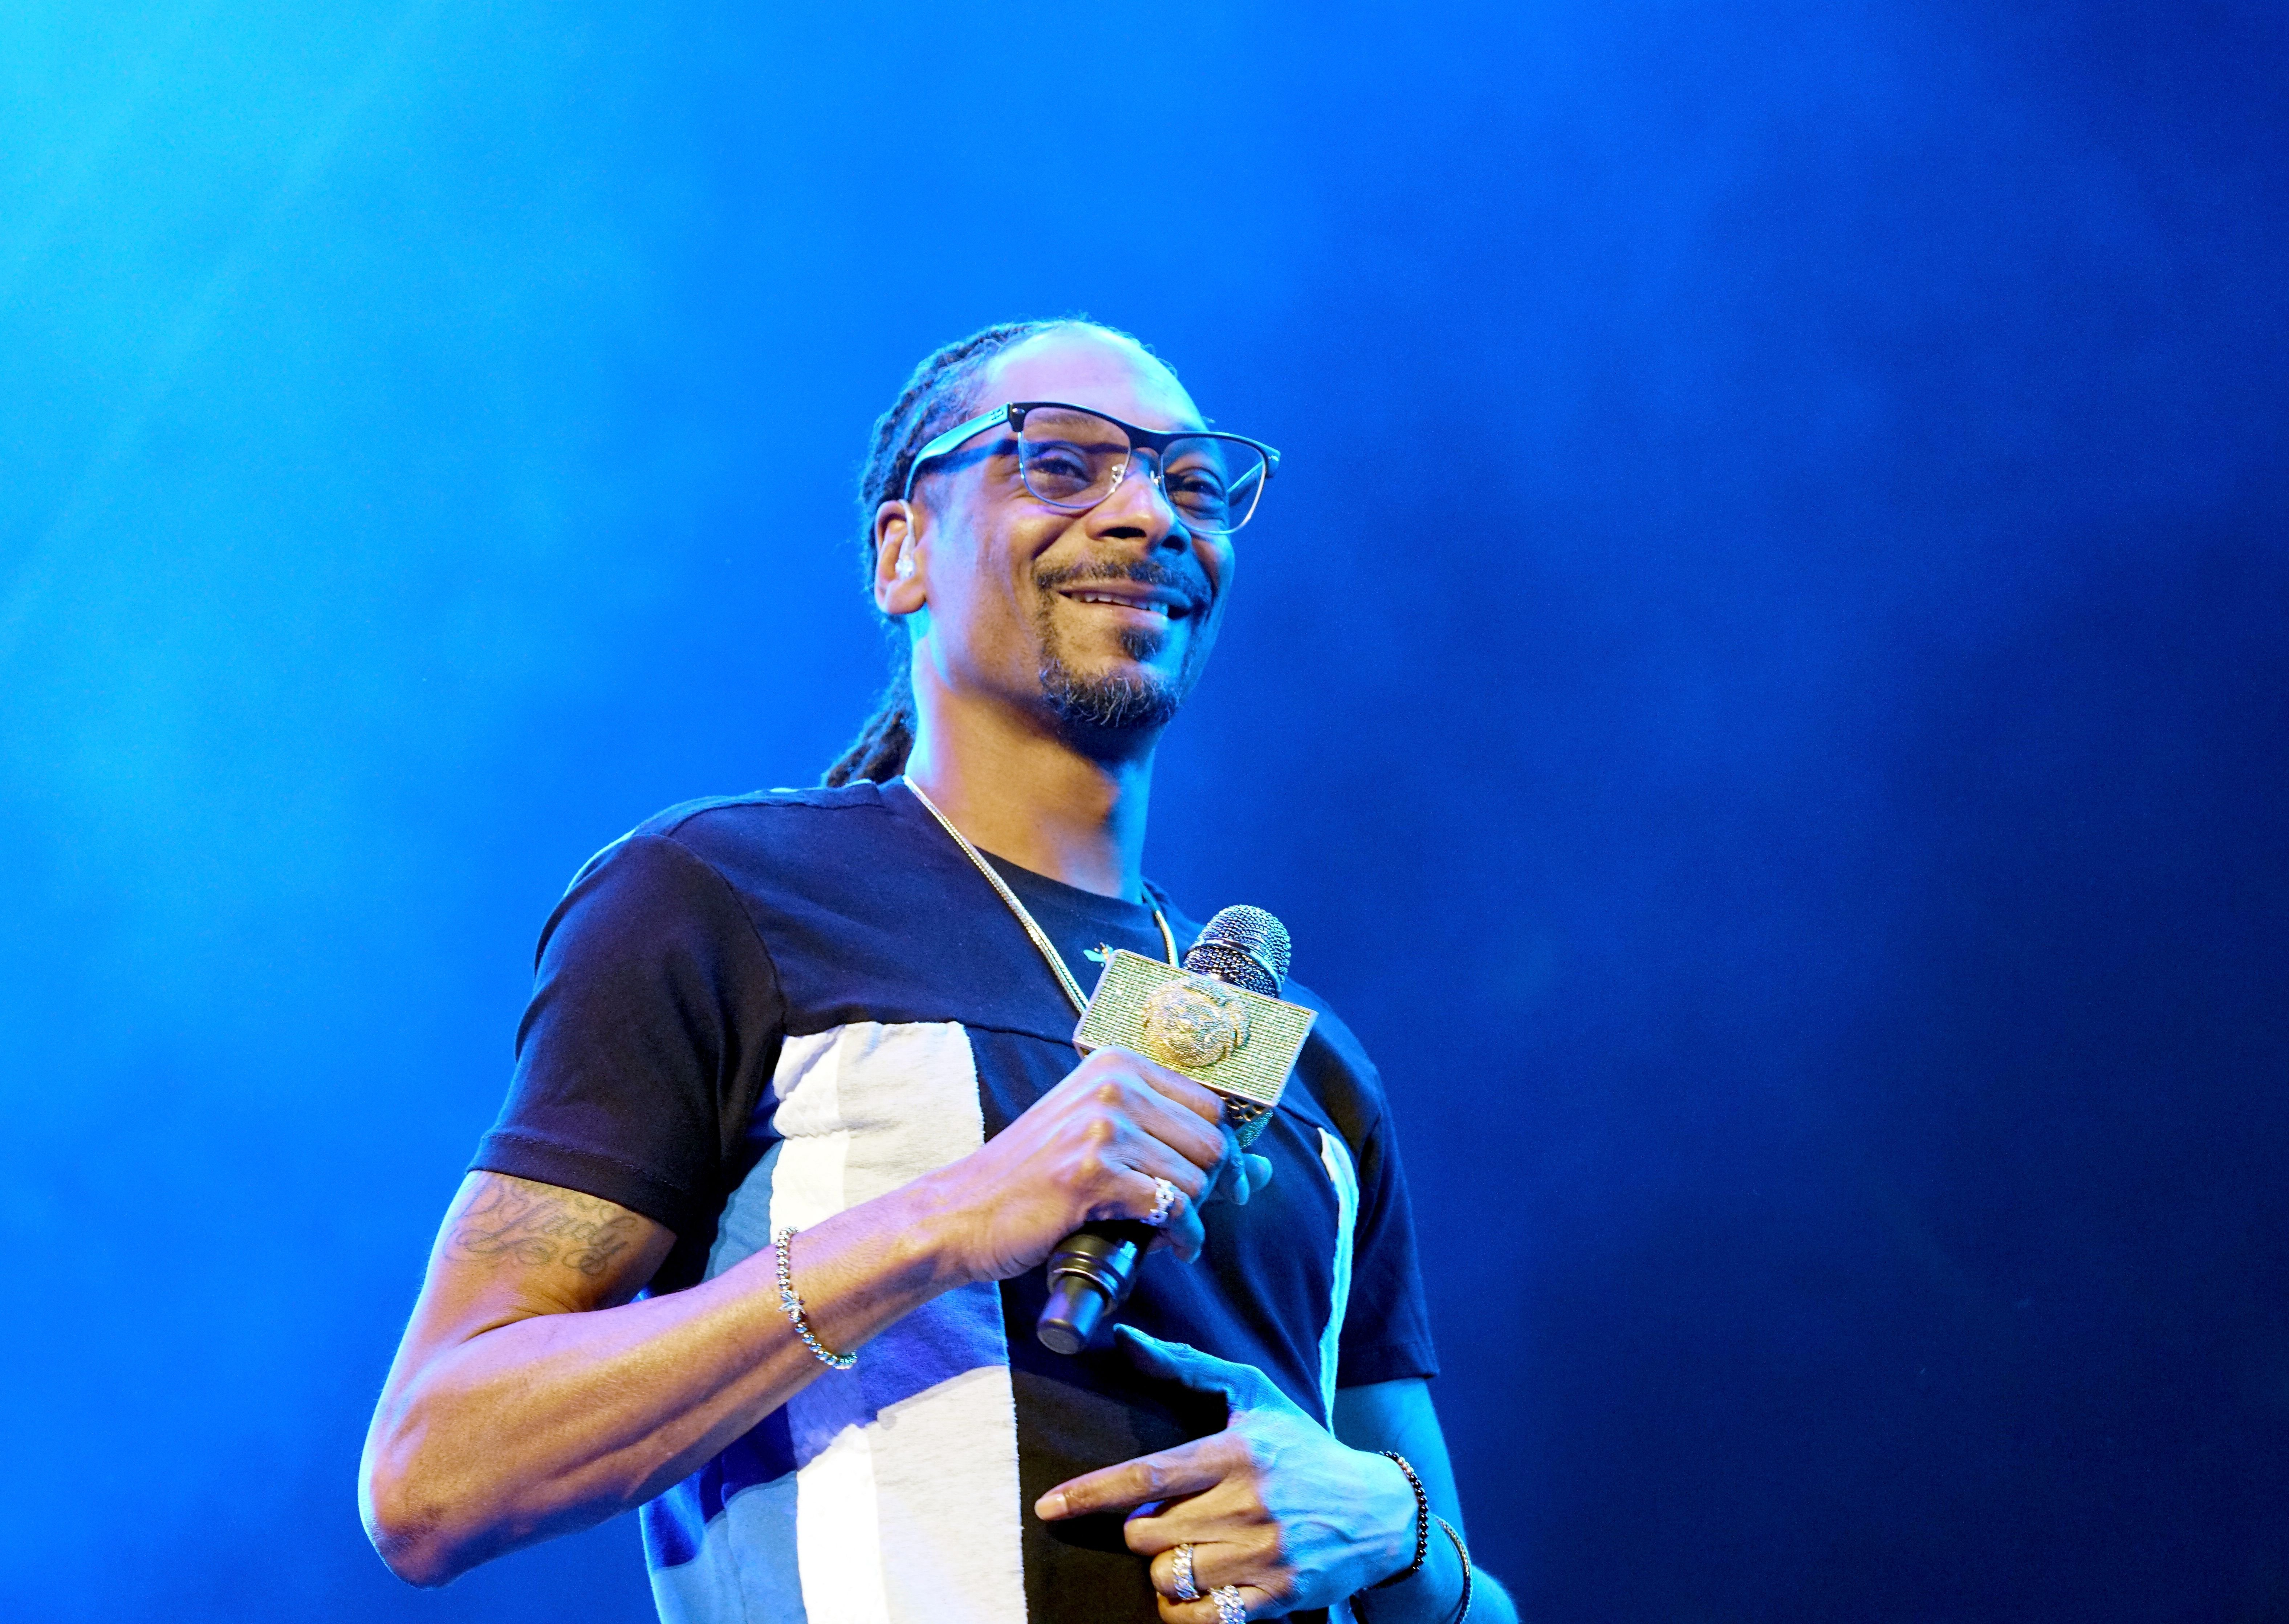 Snoop Dogg during the 2017 BET Experience Staples Center Concert, sponsored by Hulu, at Staples Center on June 22, 2017 in Los Angeles, California.   Source: Getty Images